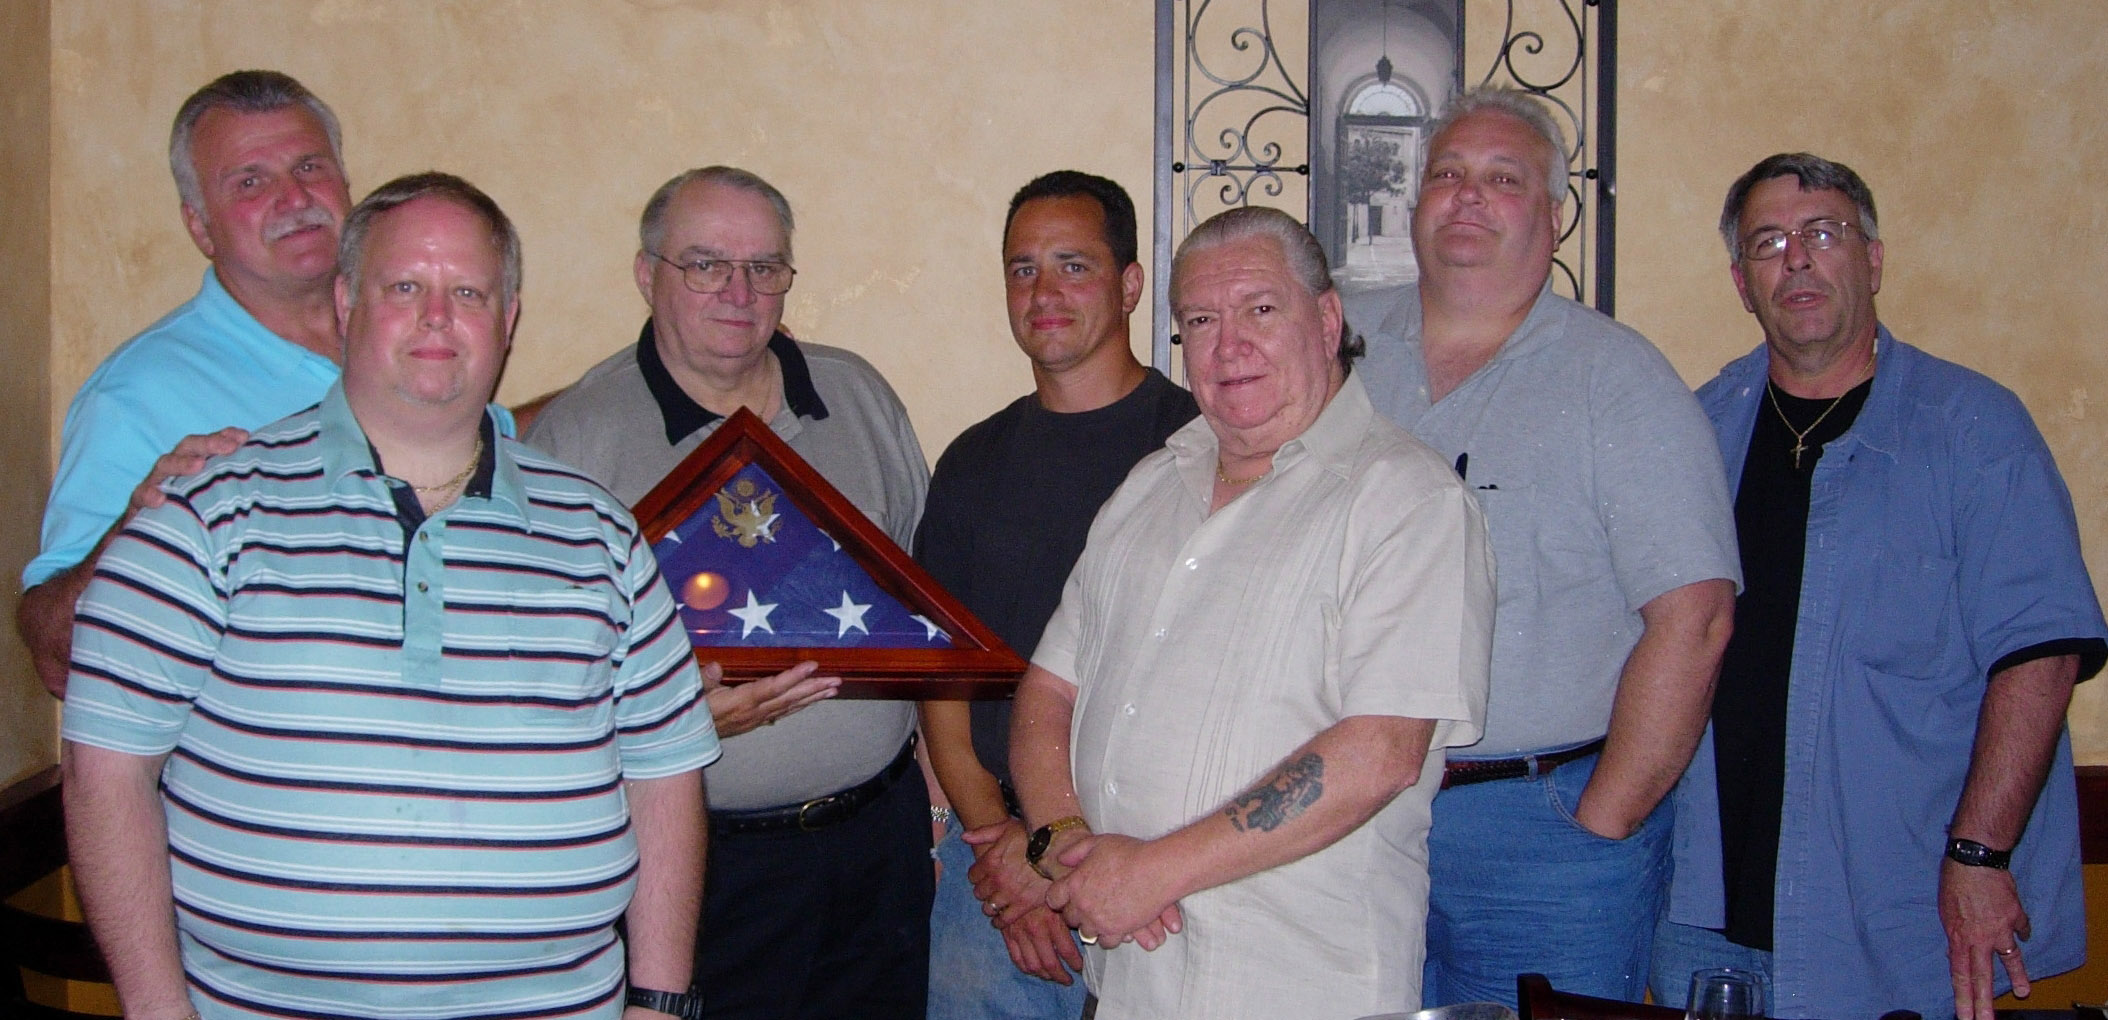 Meeting of NJT retirement of Bob Wiilliams group copy.jpg